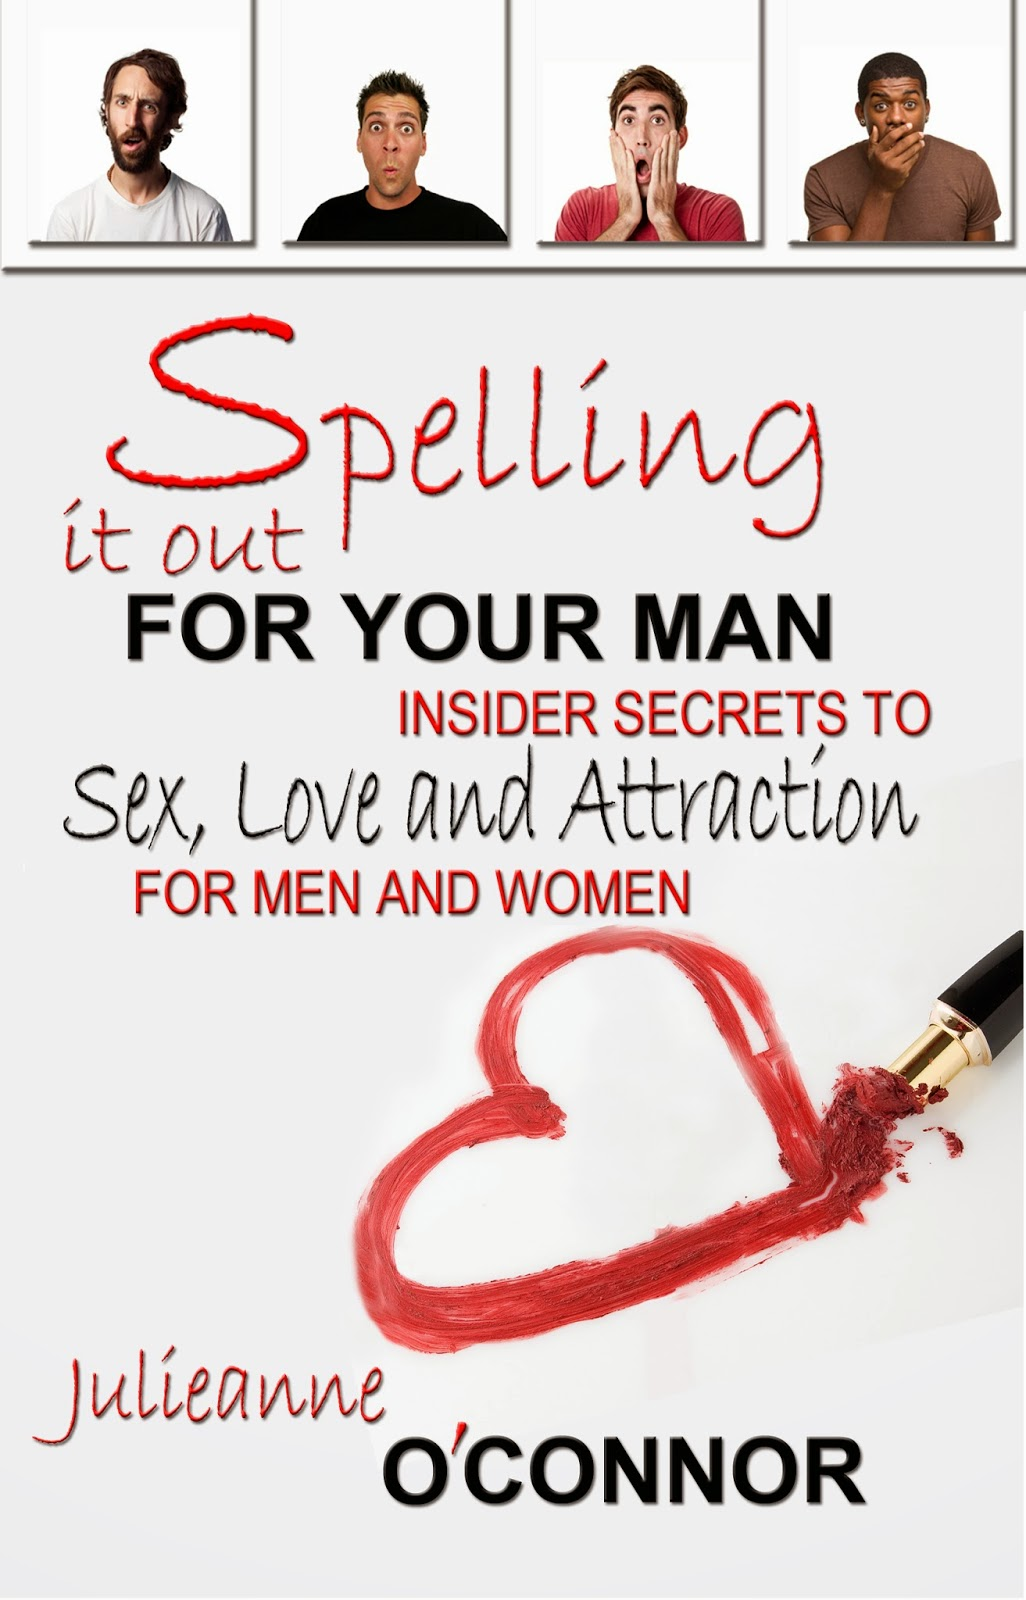 Spelling it out for your man